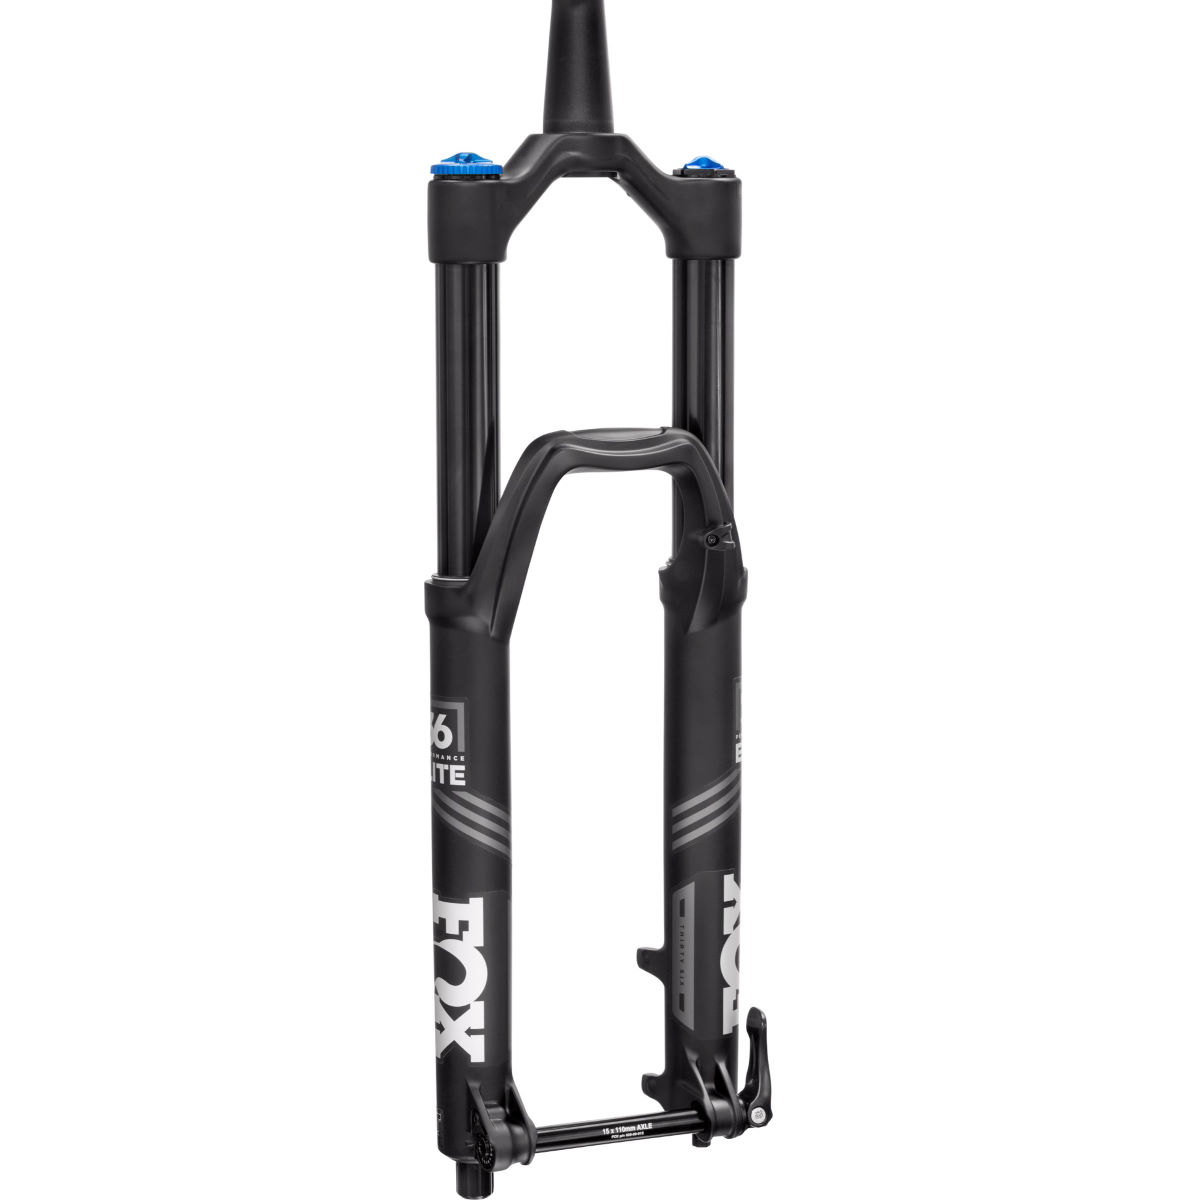 Fox Suspension 36 Float Performance Elite FIT4 Fork BOOST - Horquillas de suspensión